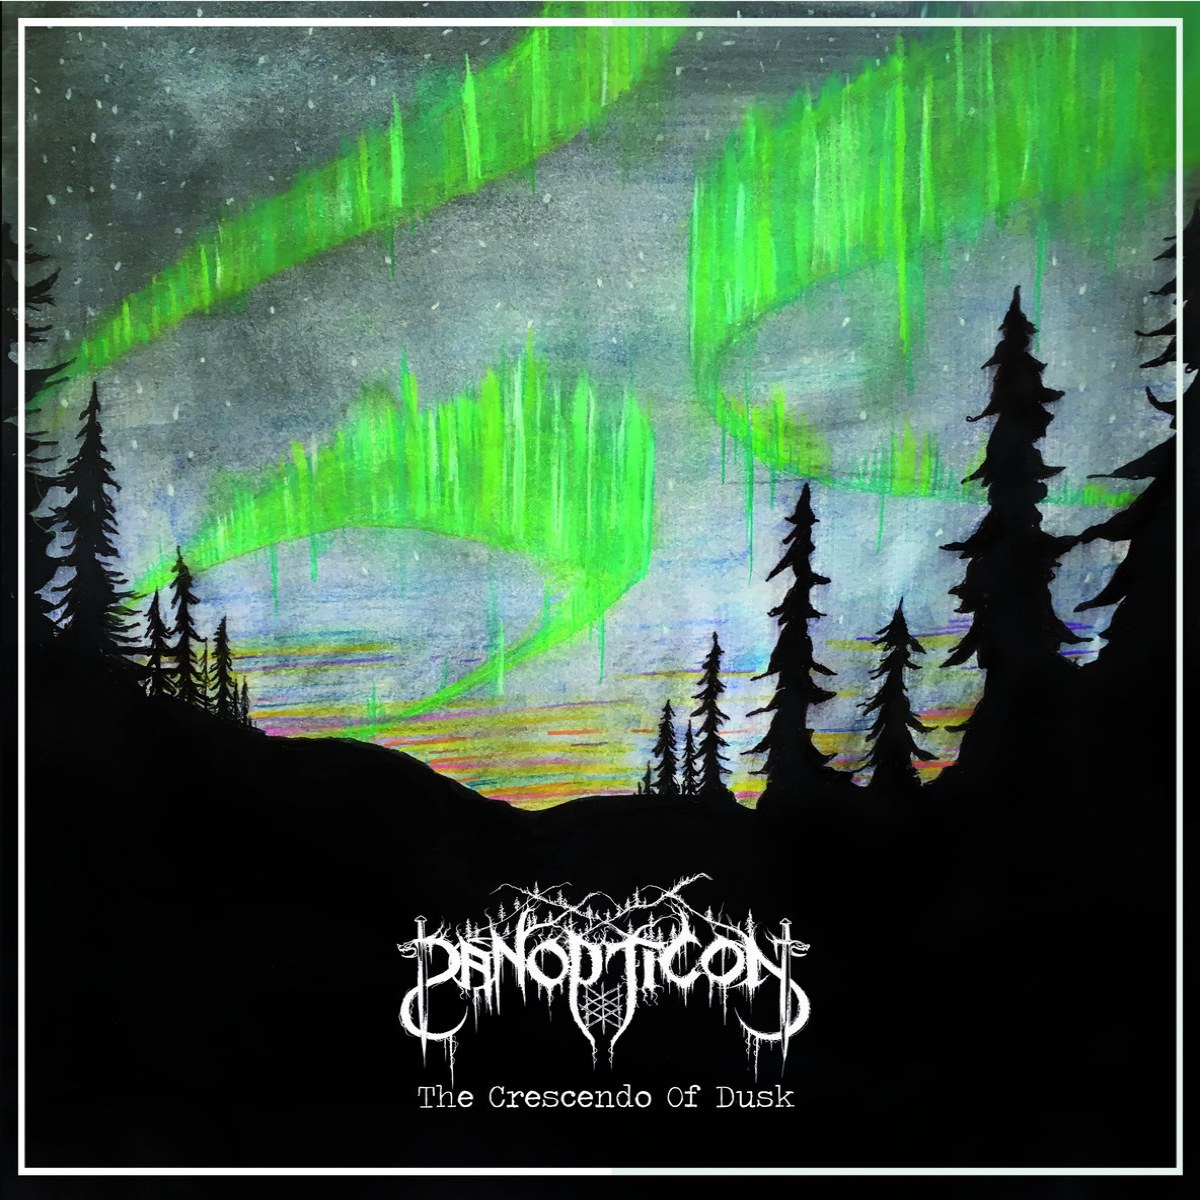 Review for Panopticon - The Crescendo of Dusk